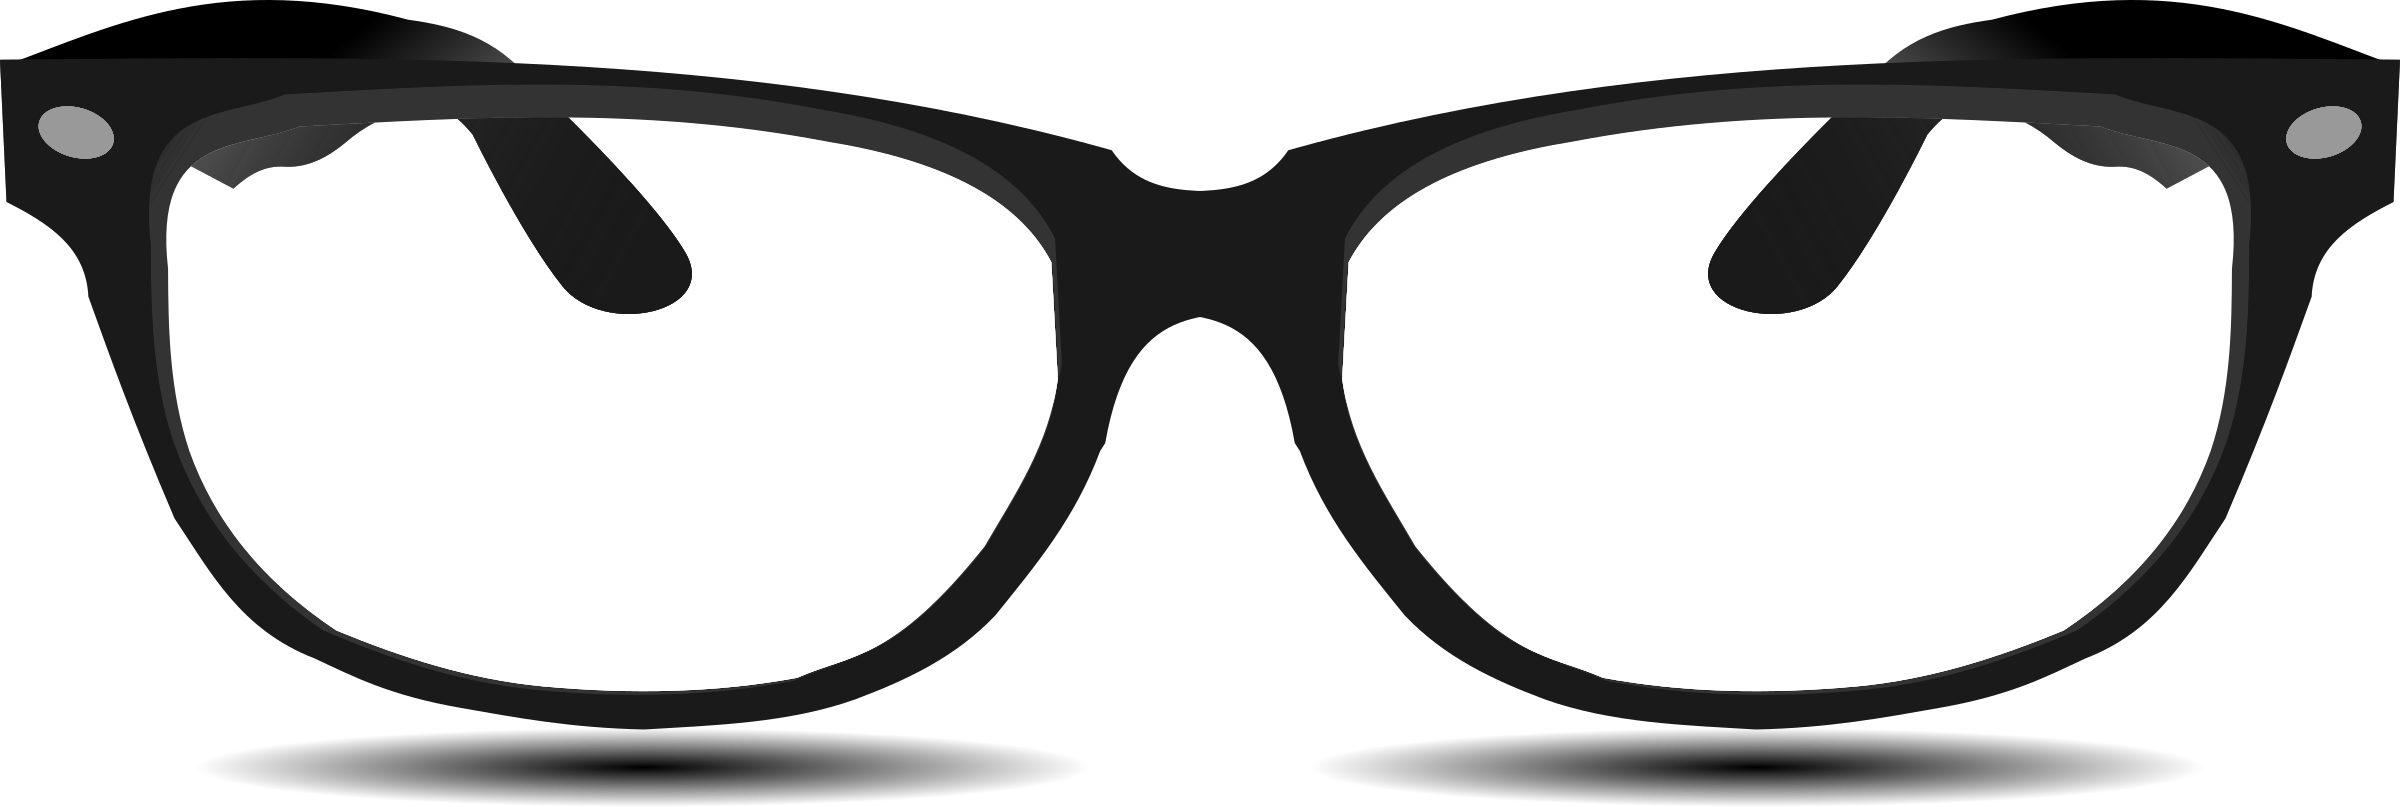 glasses by @hatalar205, A simple glasses clipart, on @openclipart.